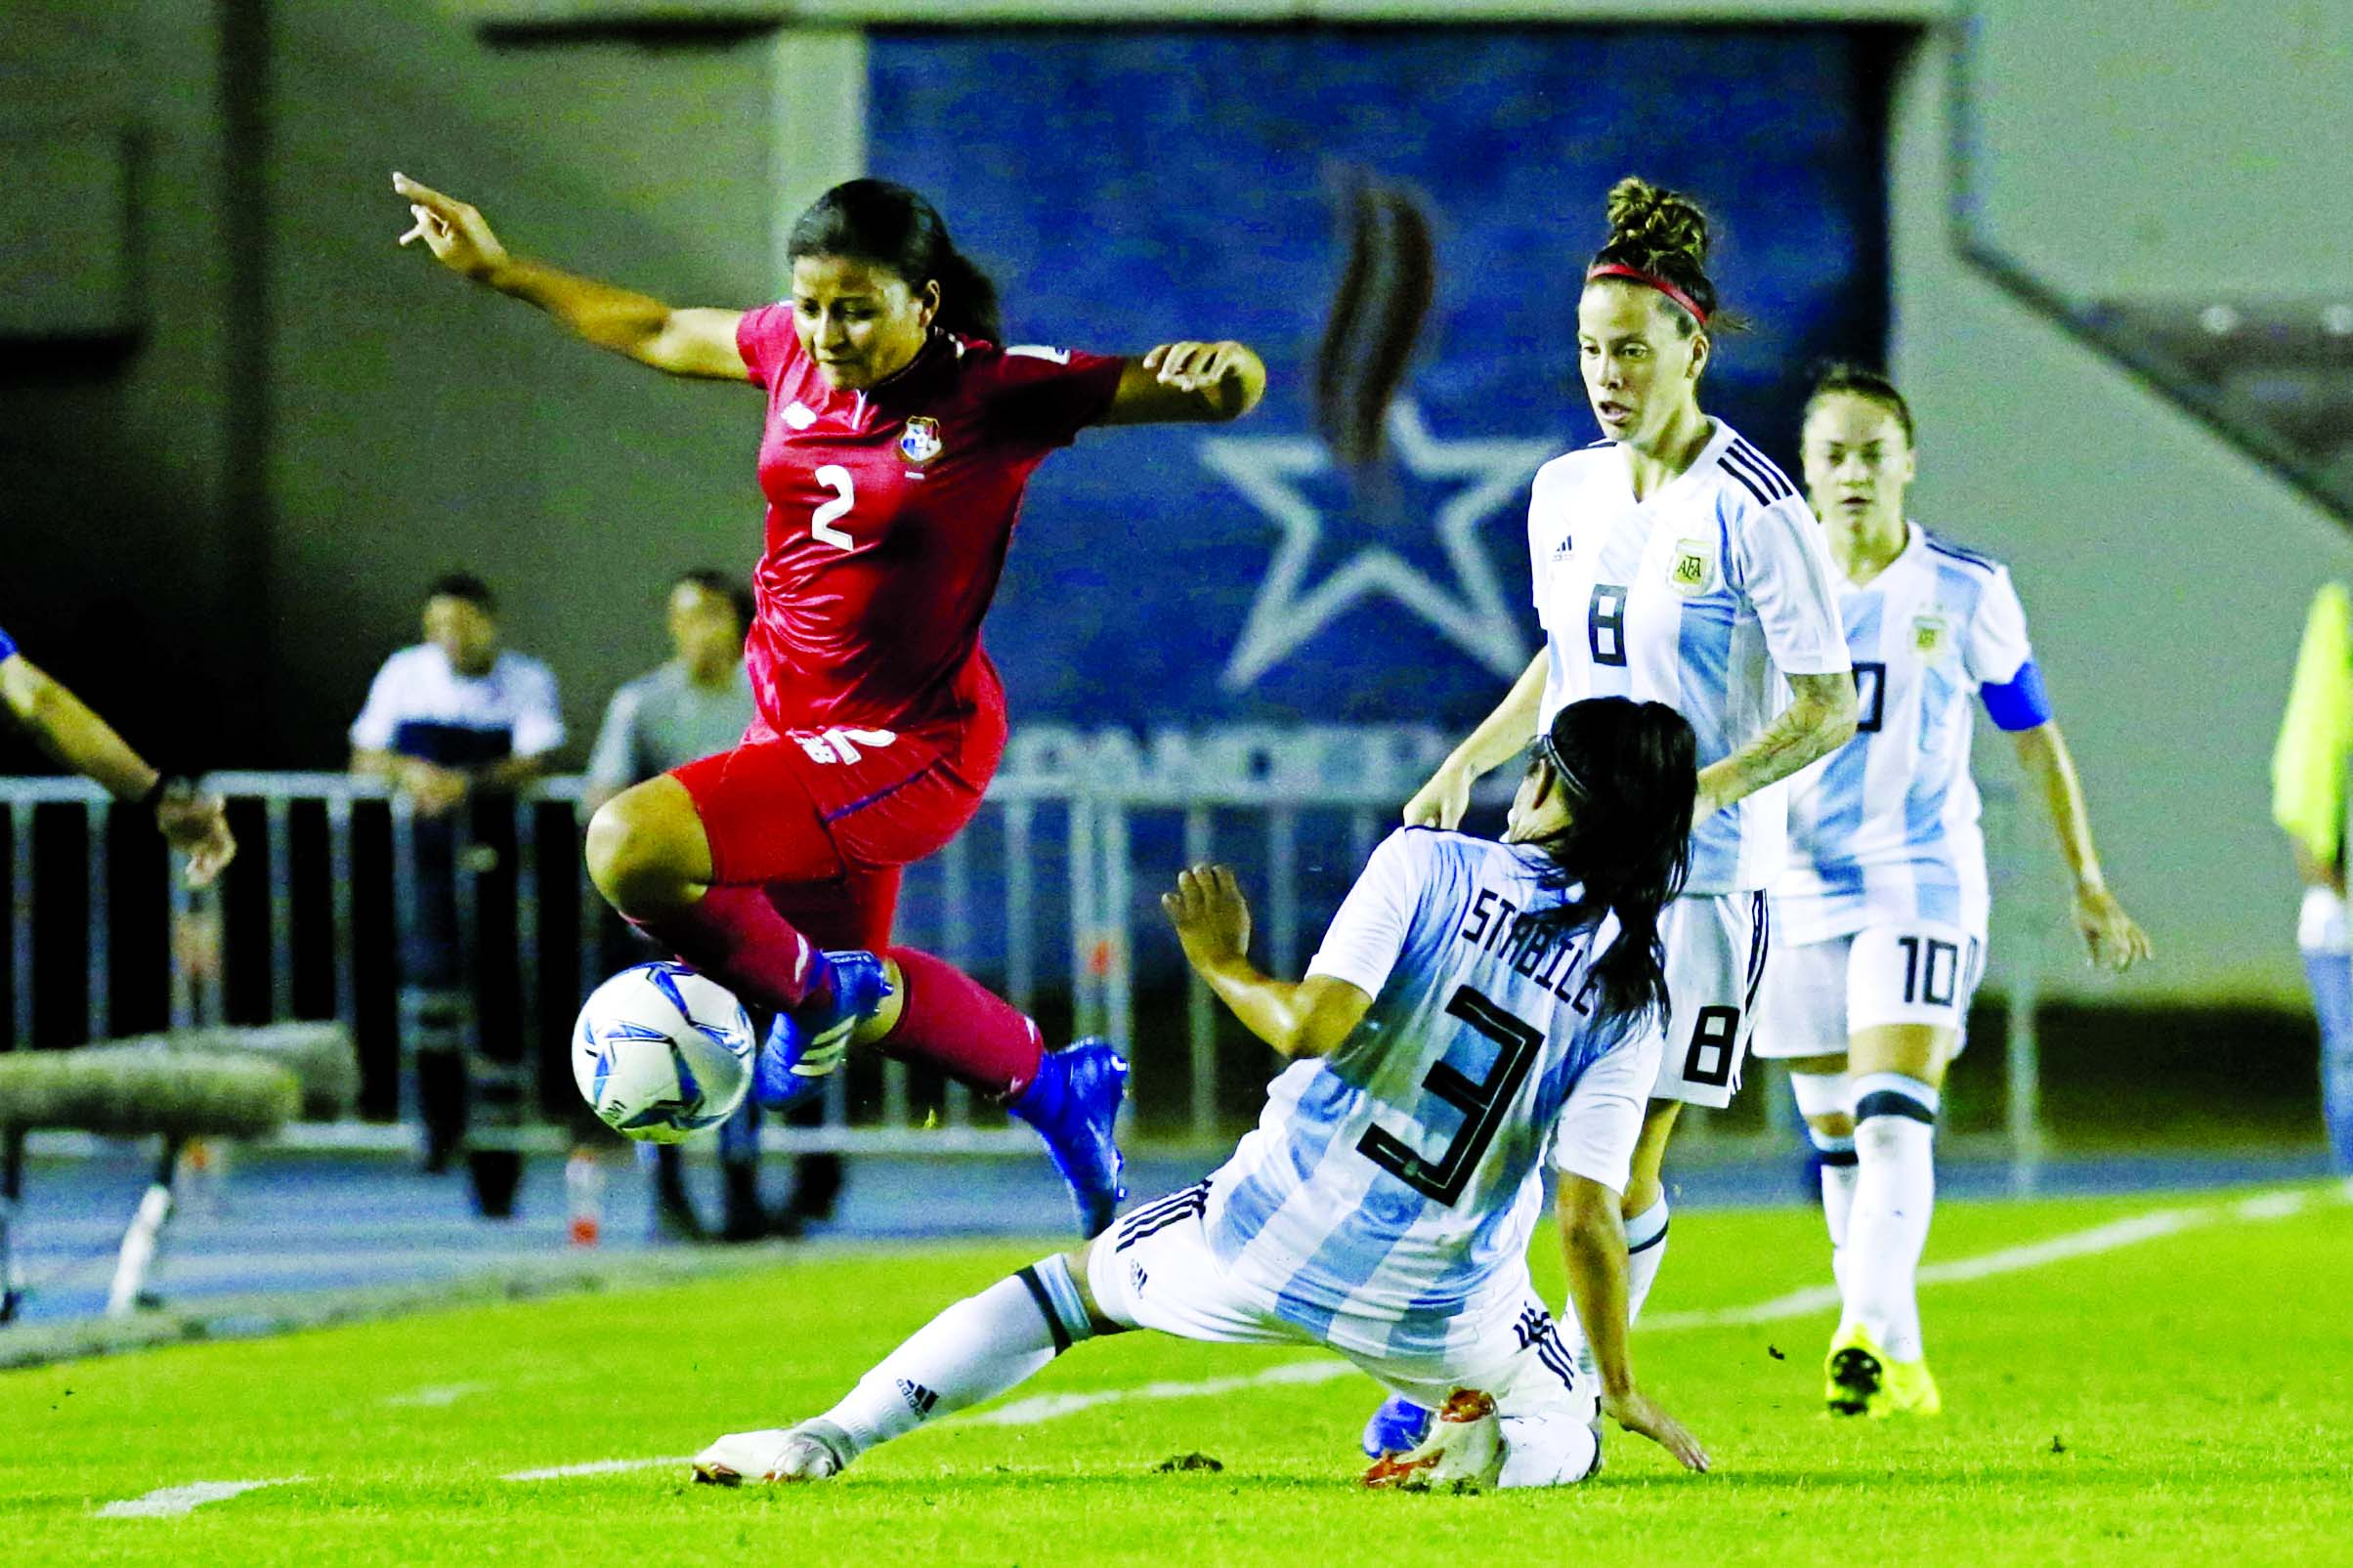 Panama's Hilary Jaen (left) and Argentina's Eliana Stabile fight for the ball during the second leg play off qualifying soccer match for the Women's World Cup 2019 at Rommel Fernandez stadium in Panama City on Tuesday.